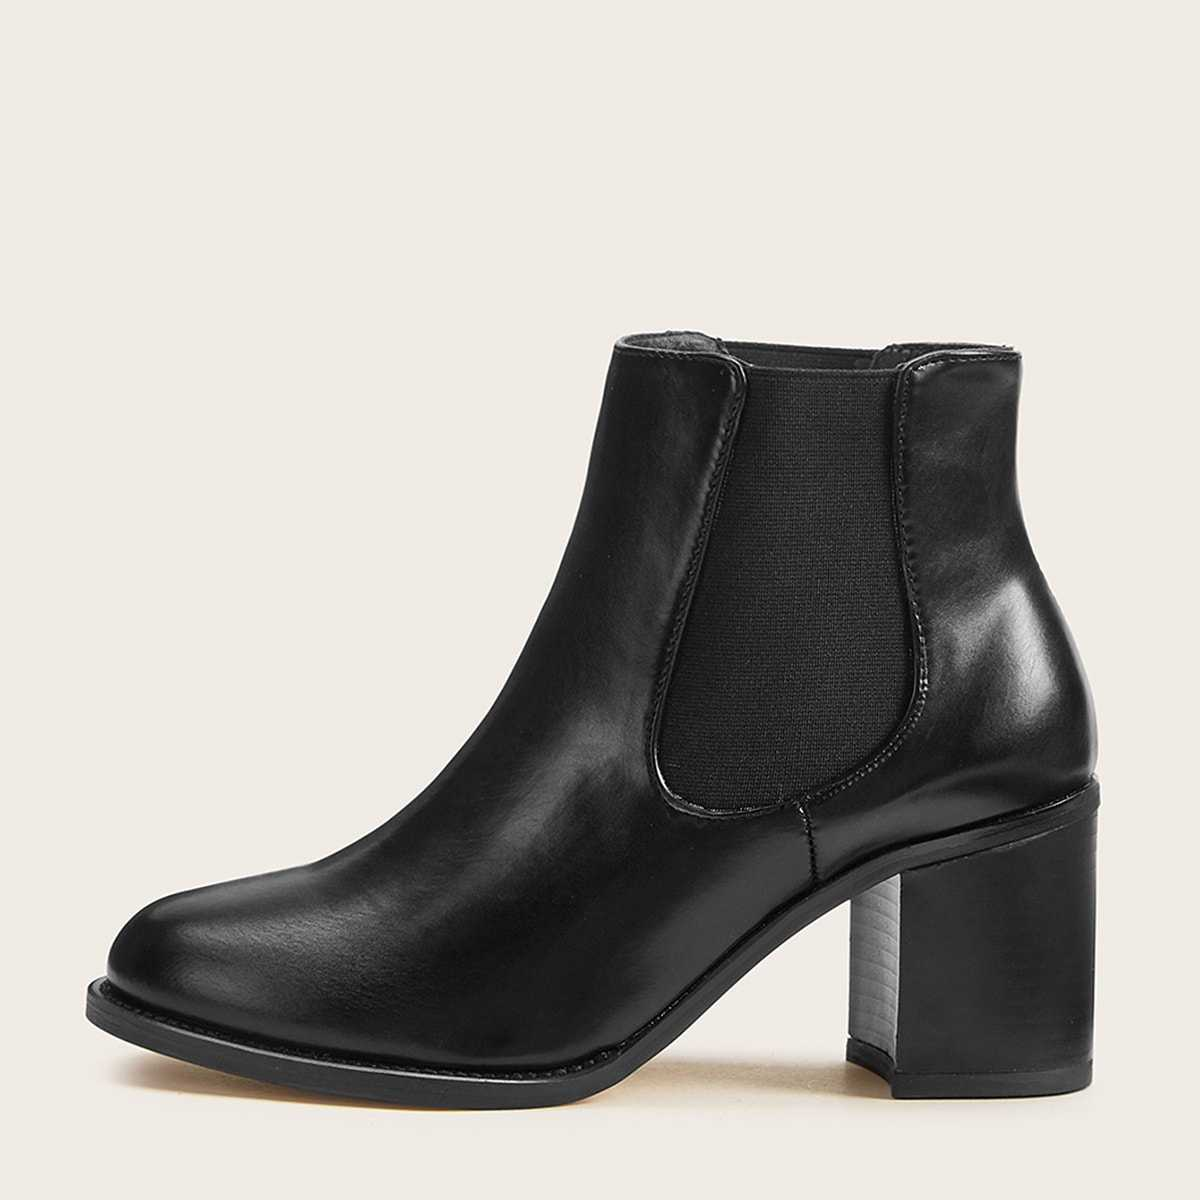 Side Zip Chunky Heeled Chelsea Boots in Black by ROMWE on GOOFASH